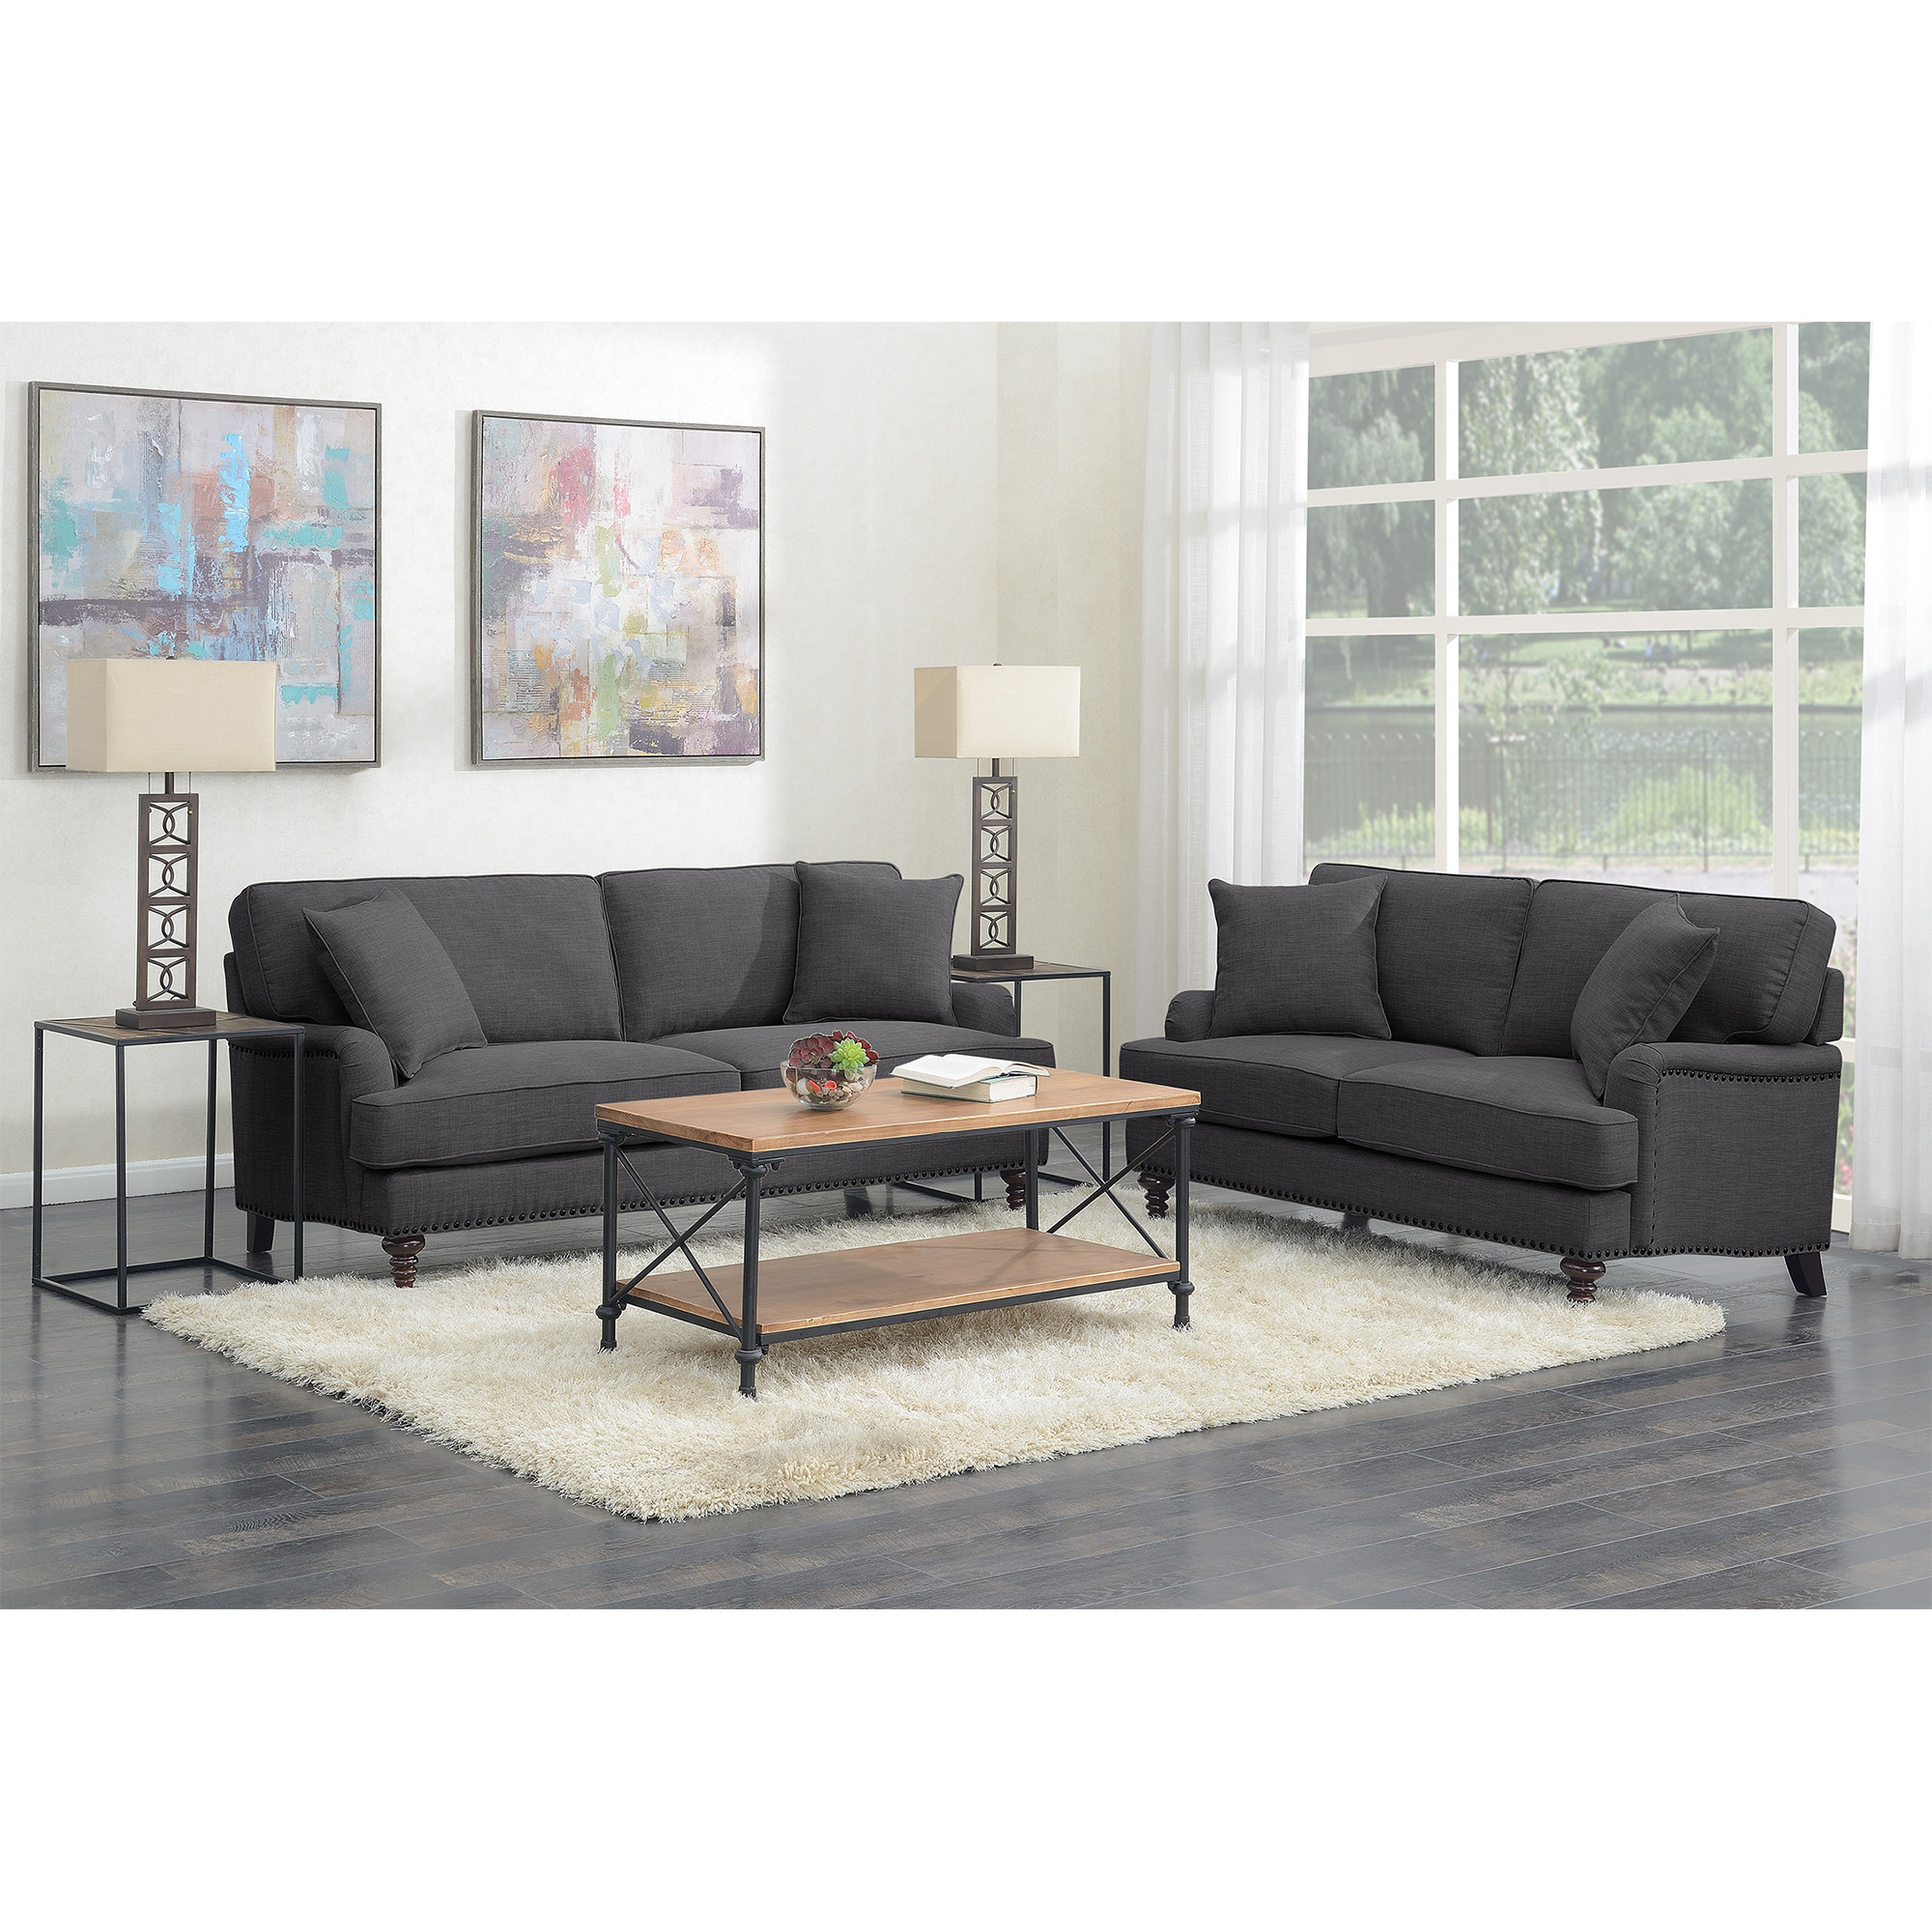 Picket House Living Room Set Sofa Loveseat Charcoal